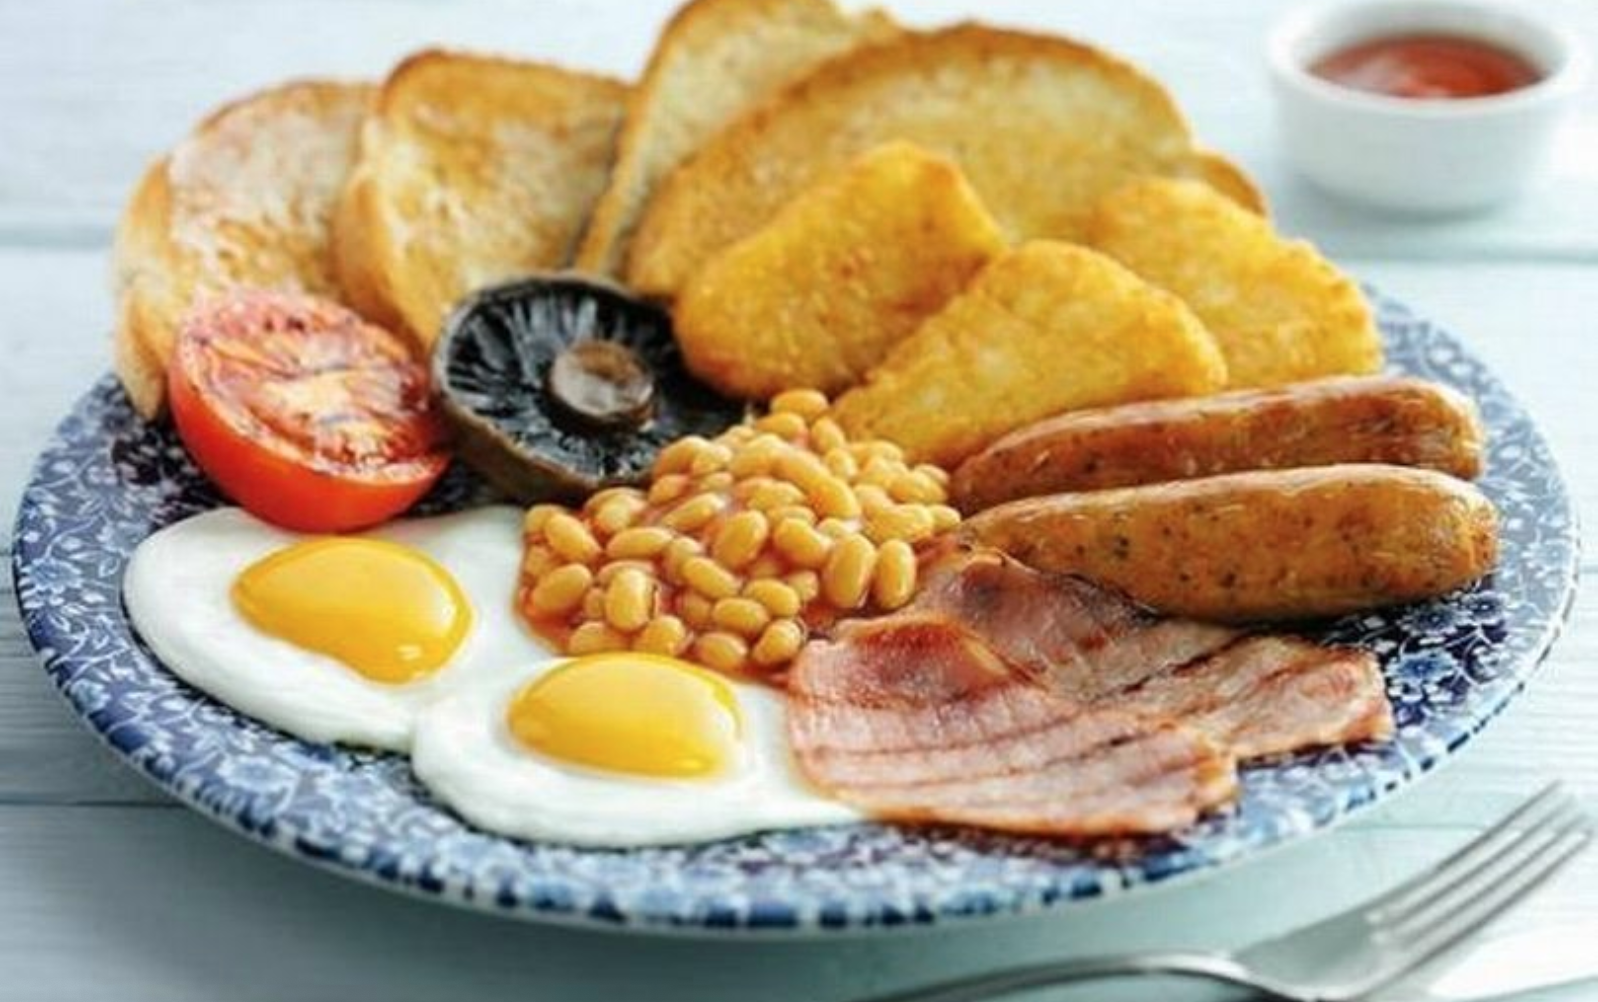 Wetherspoons breakfast half price with Eat Out to Help Out discount